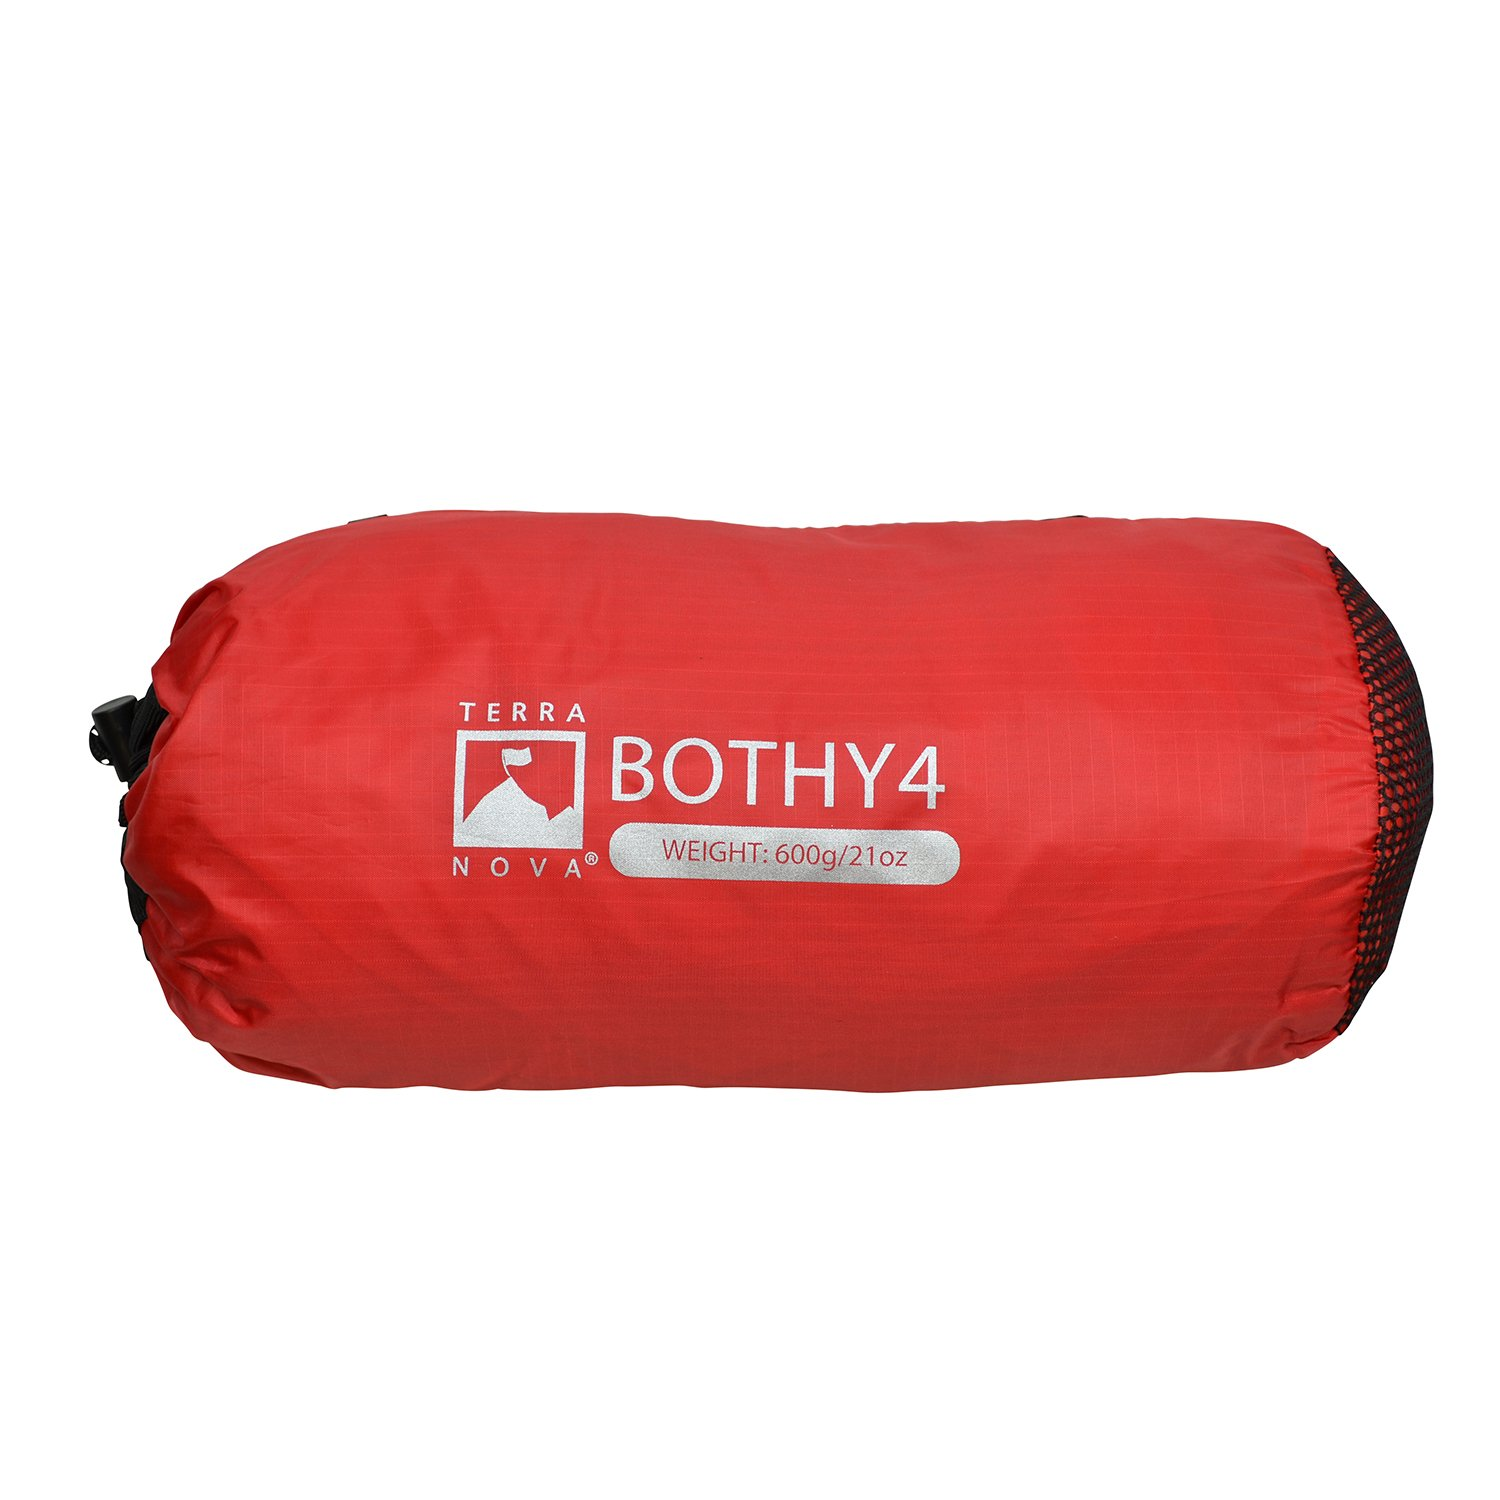 Terra Nova Bothy 4 | Travel bags